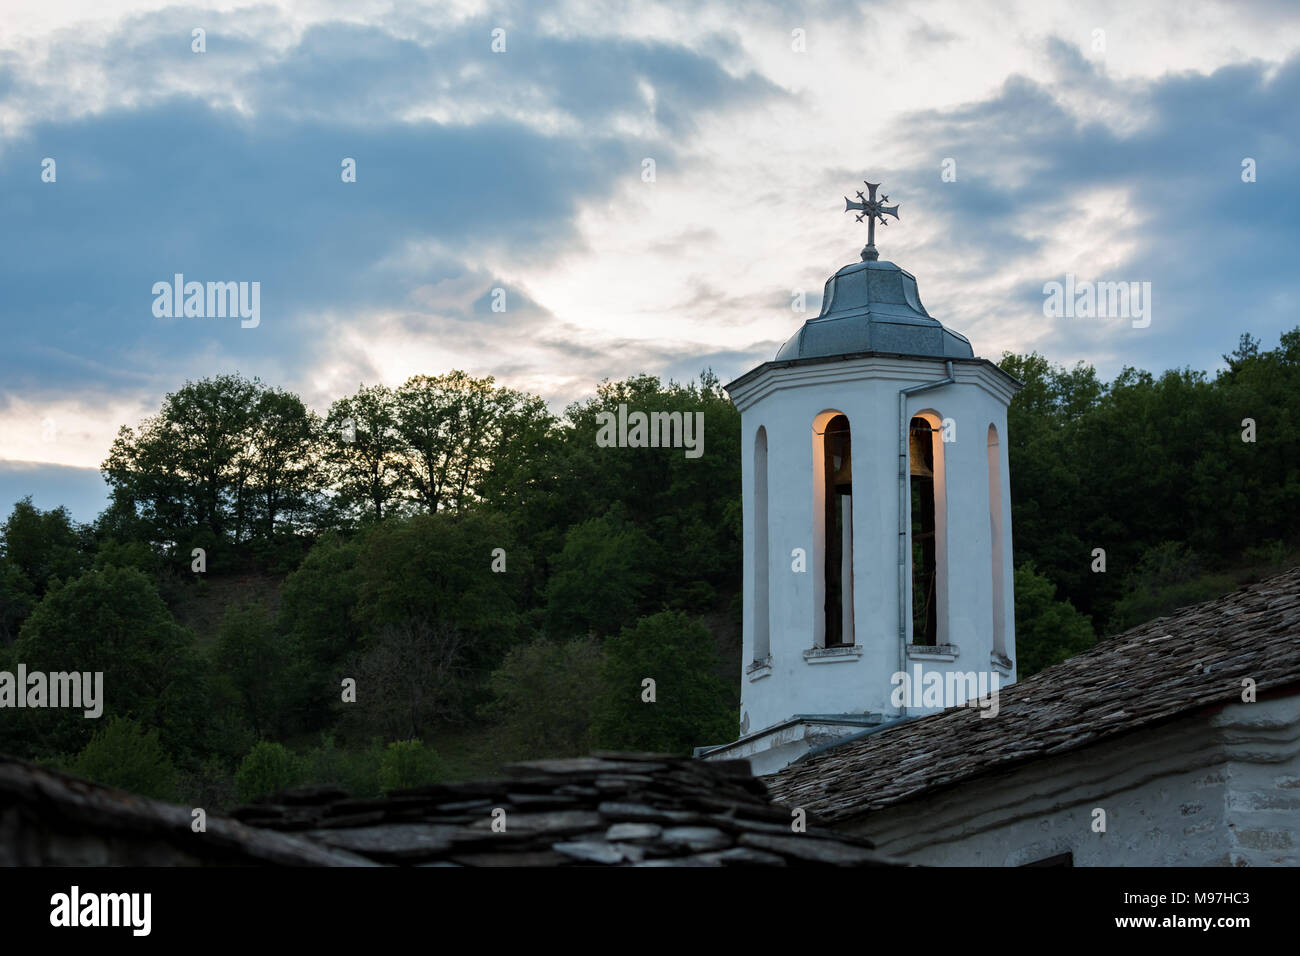 Lit dome of orthodox church with decorated cross and brass bell at evening, village of Dolen, Rhodope mountain, Bulgaria with cloudy sky background - Stock Image